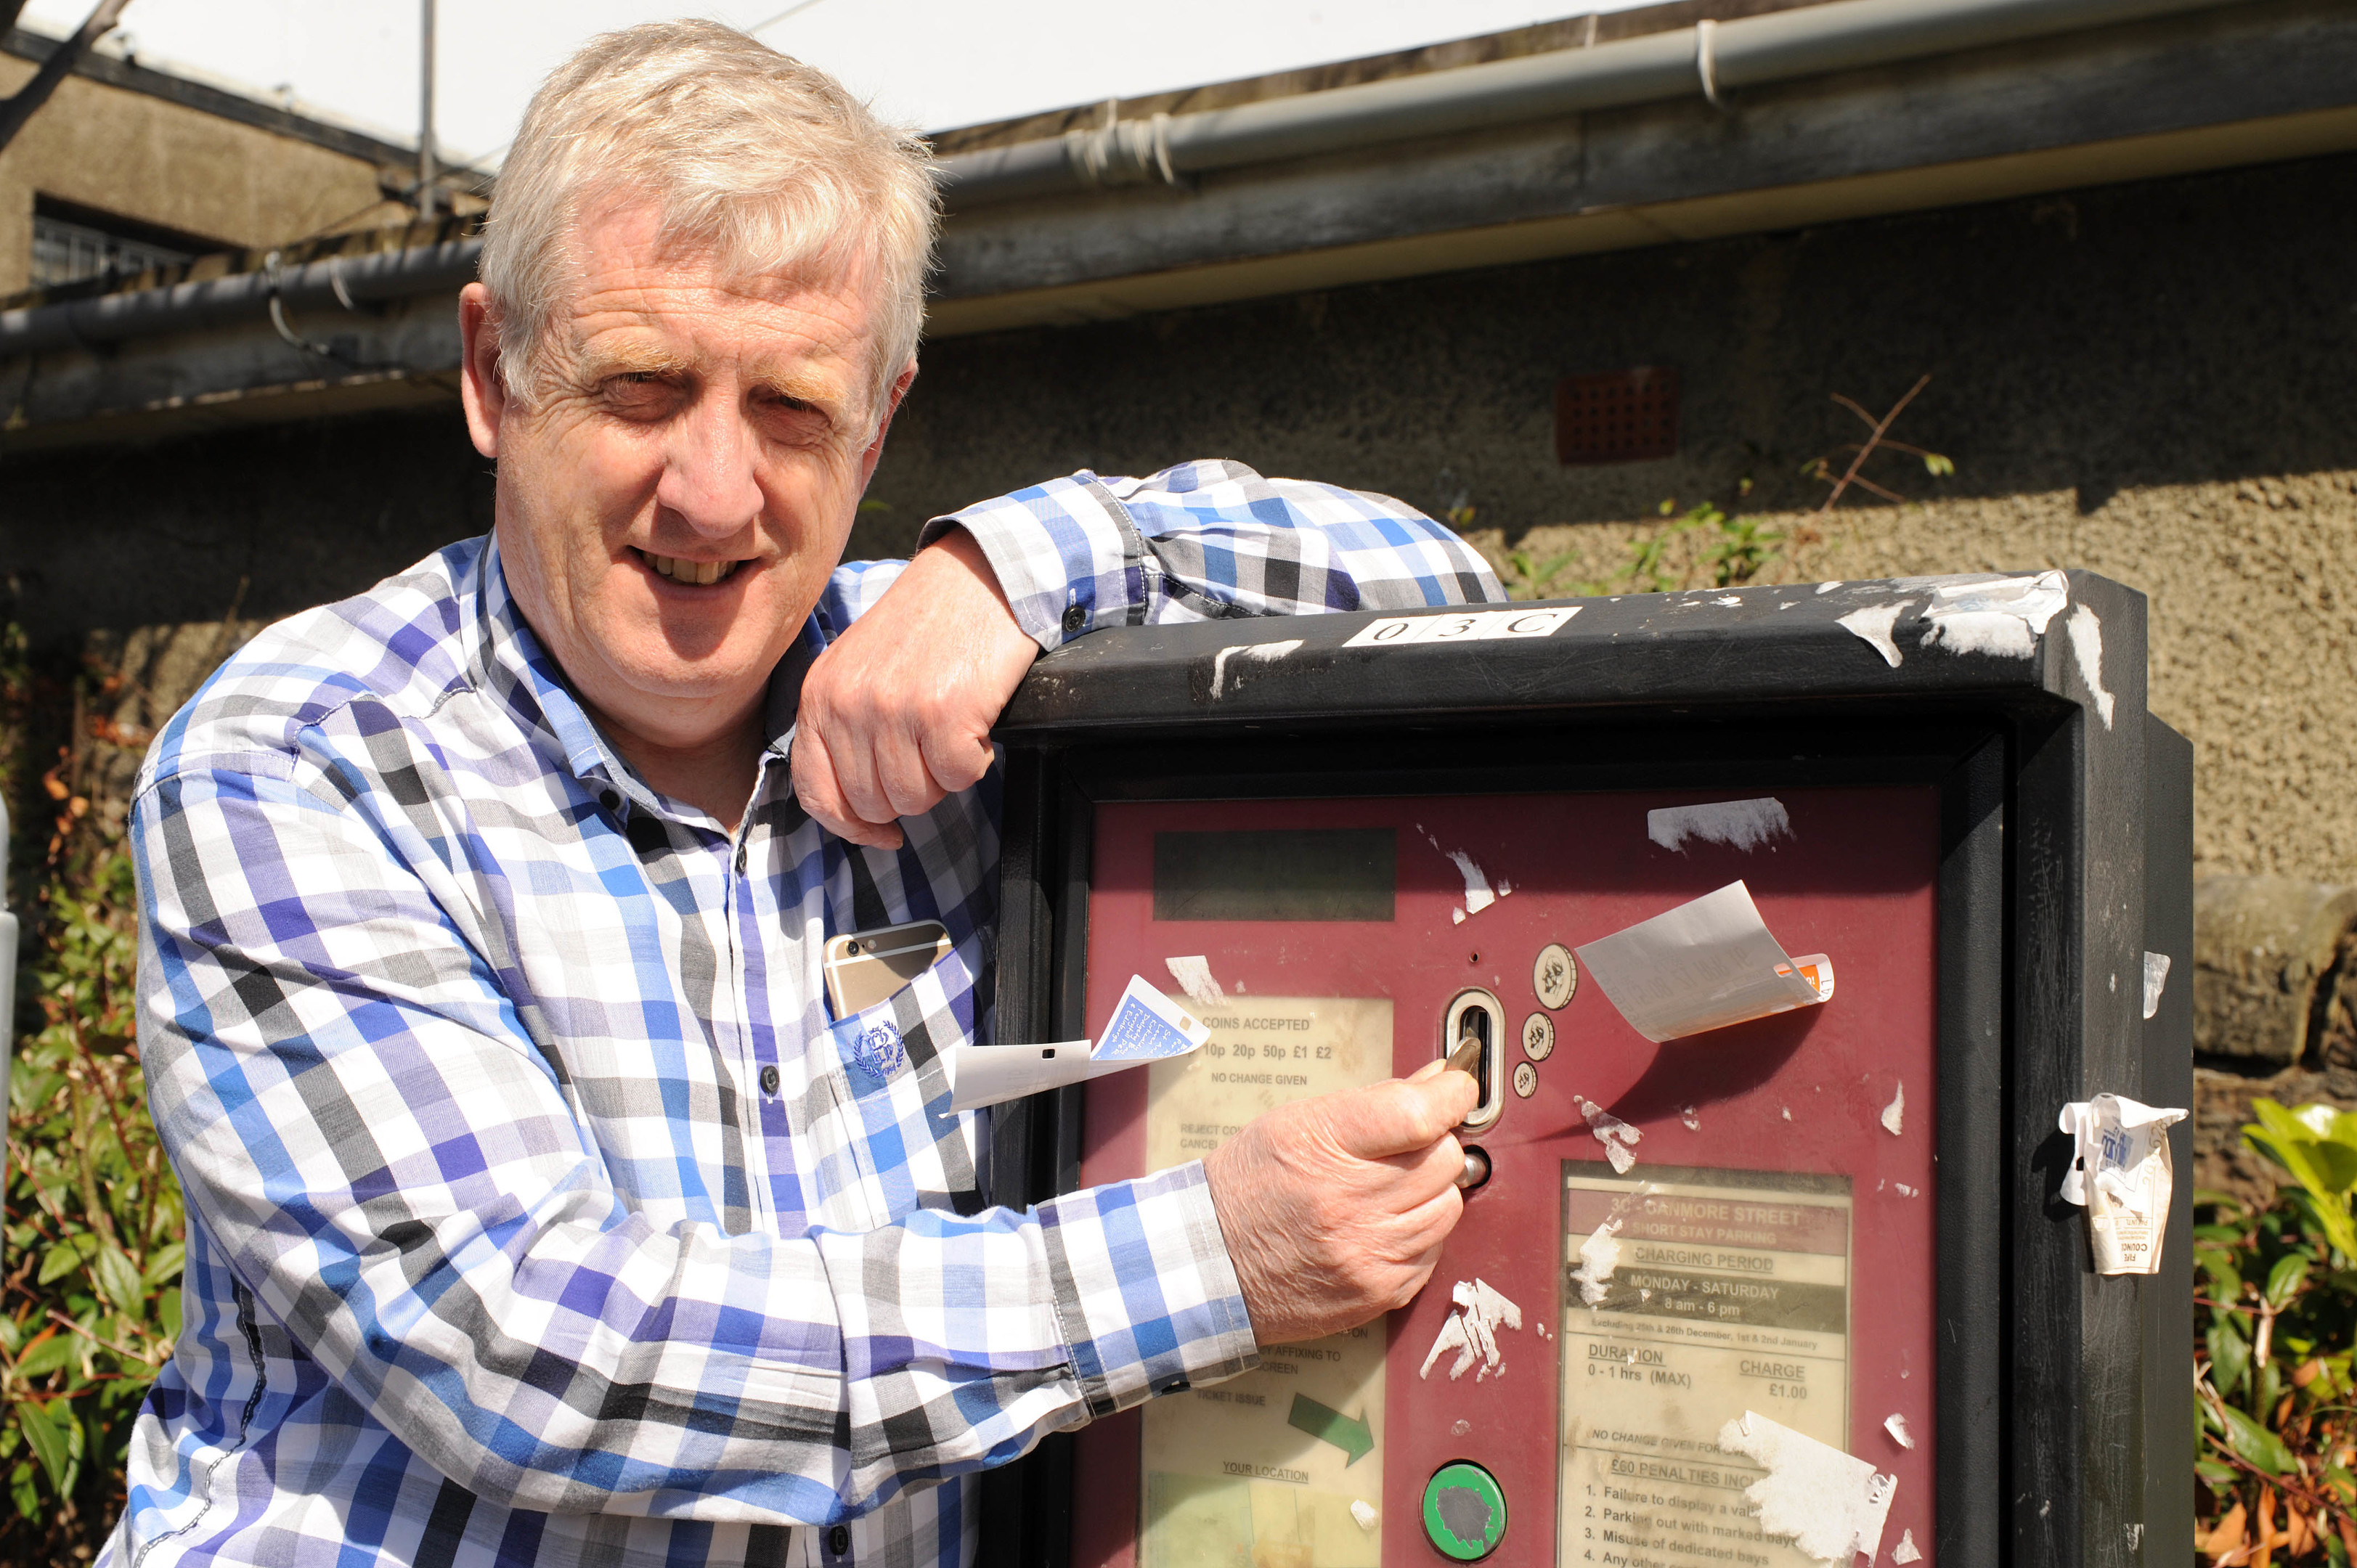 Dunfermline MP Douglas Chapman feeds a parking meter in the centre of town.